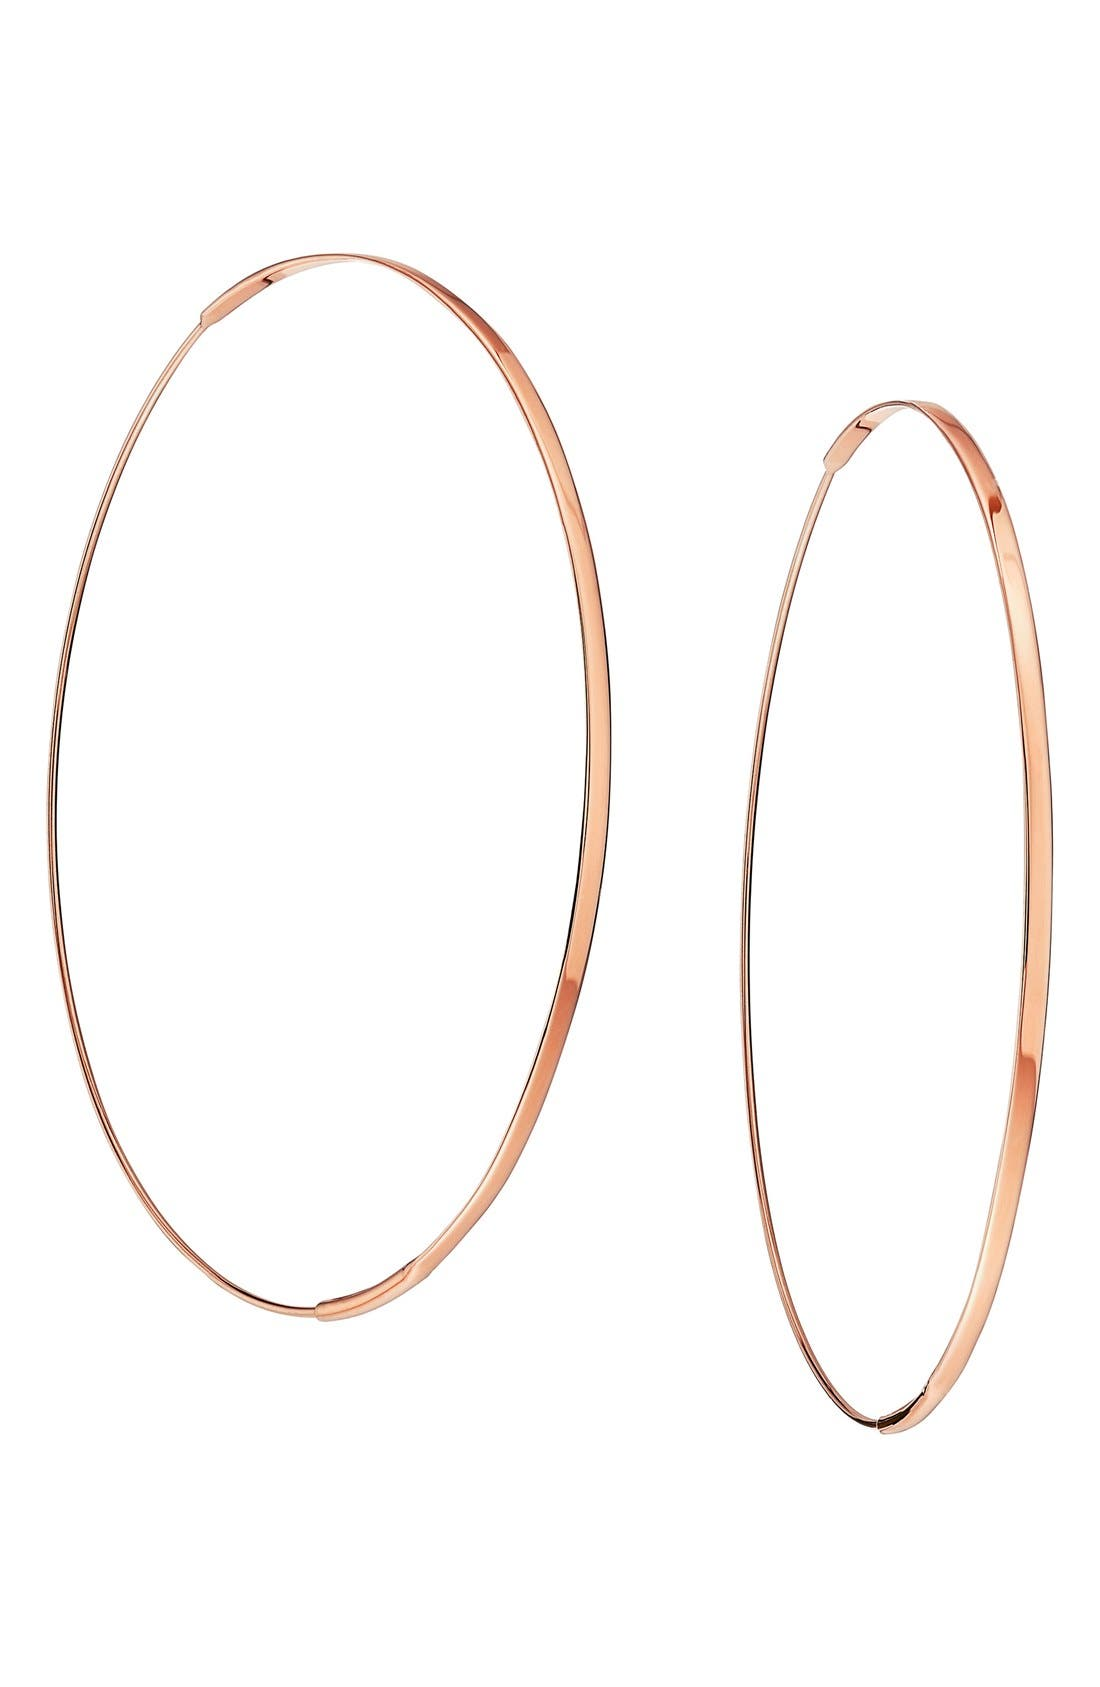 Main Image - Lana Jewelry 'Large Flat Magic' Hoop Earrings